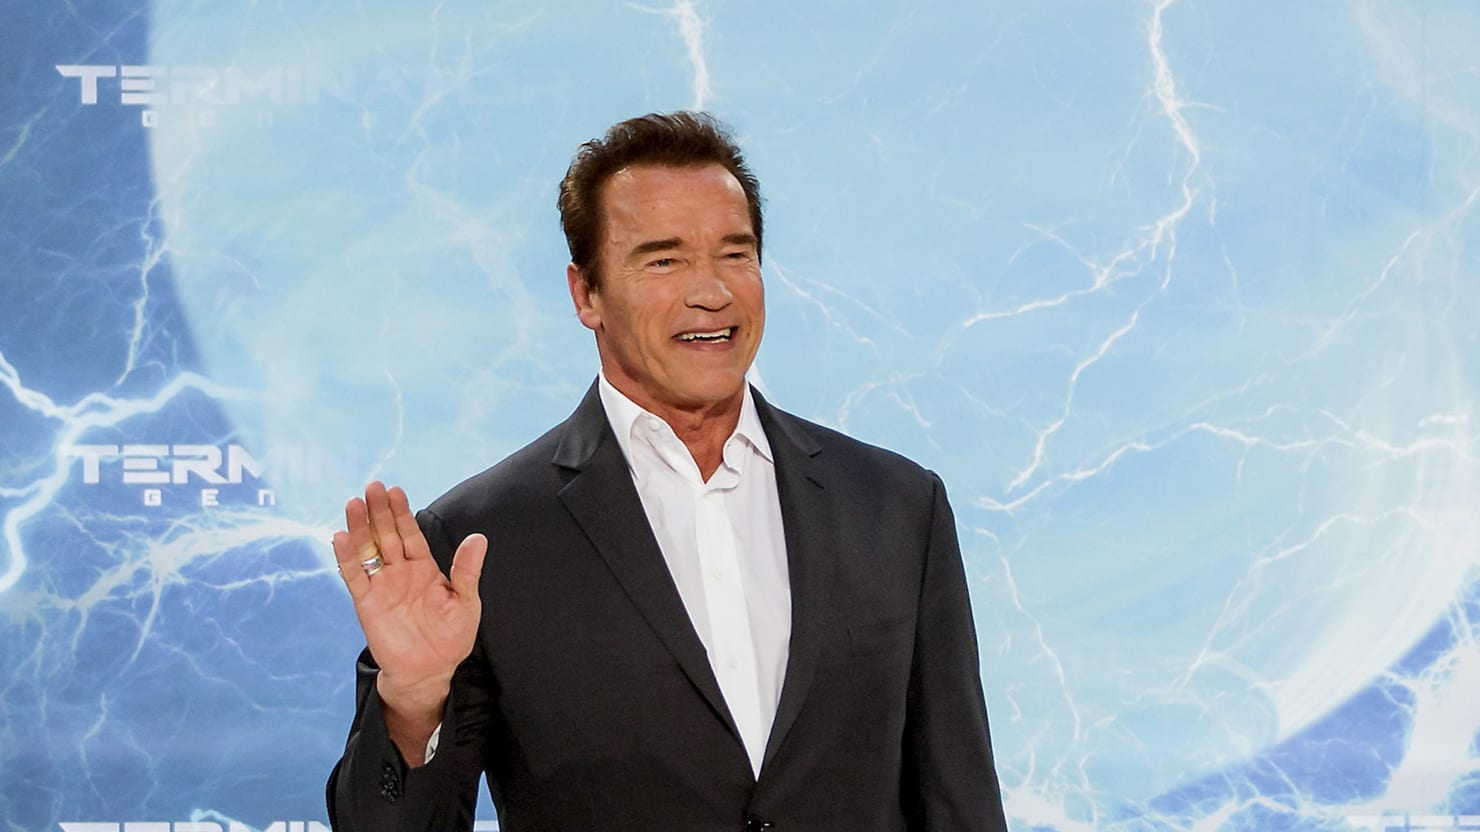 Arnold schwarzenegger vetoed same sex marriage